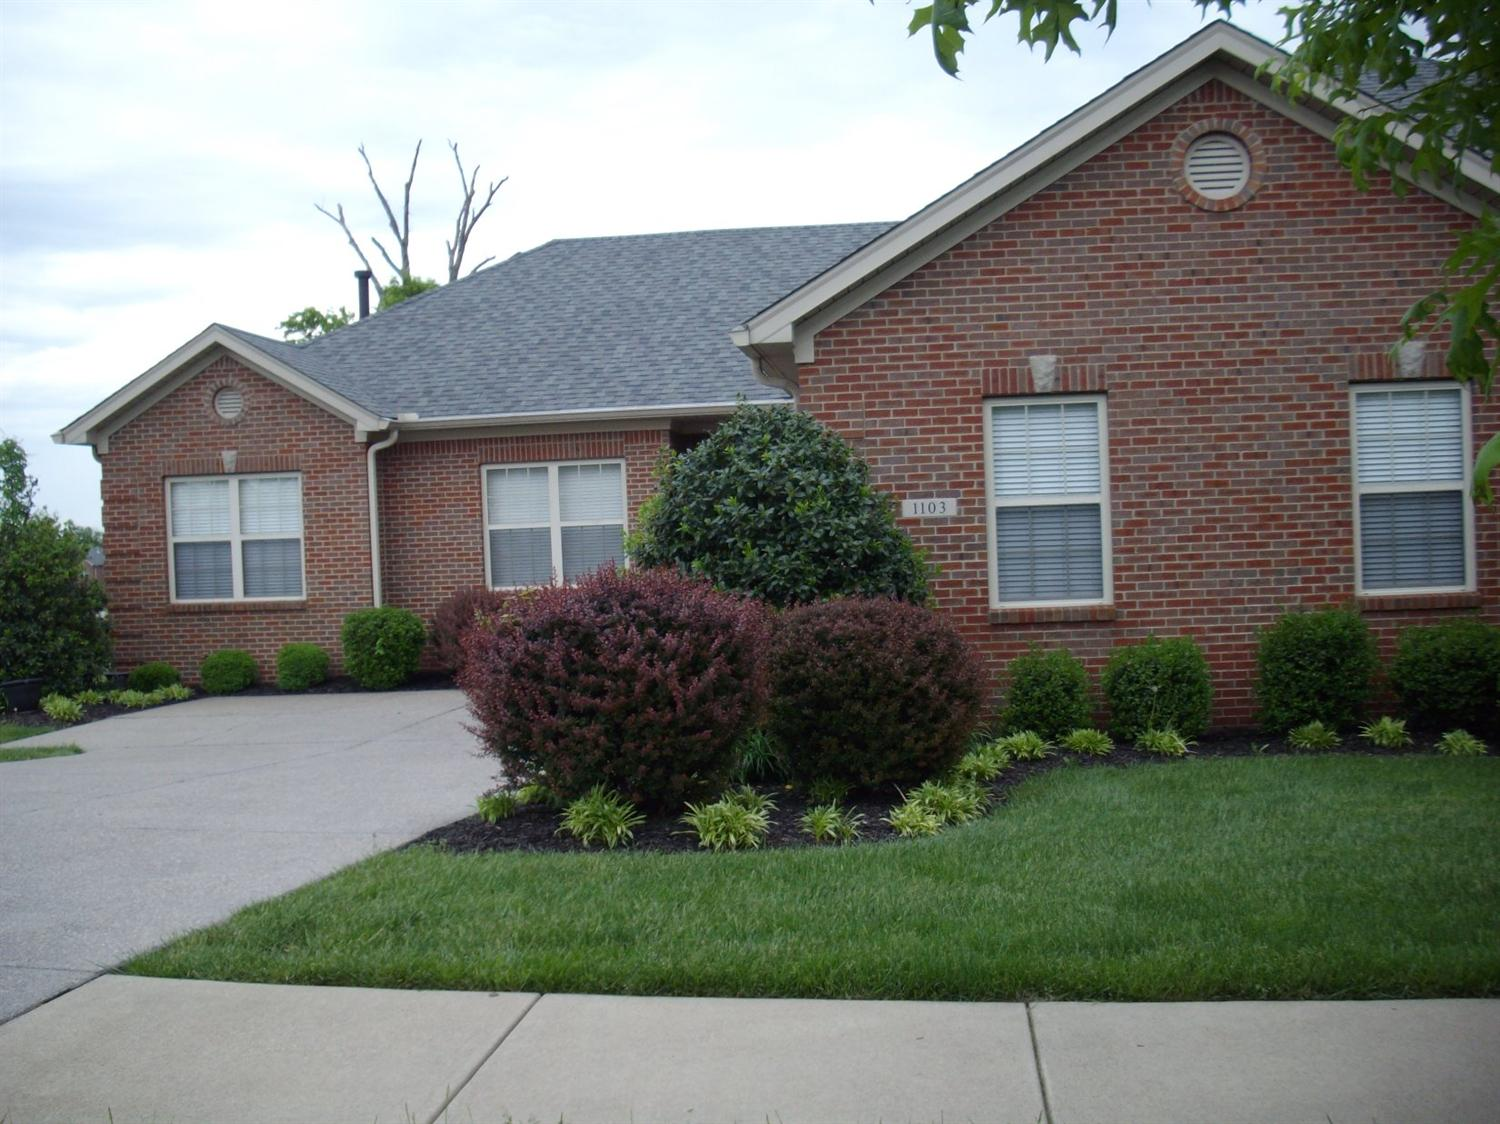 Home For Sale at 1103 Leawood Dr #114, Frankfort, KY 40601